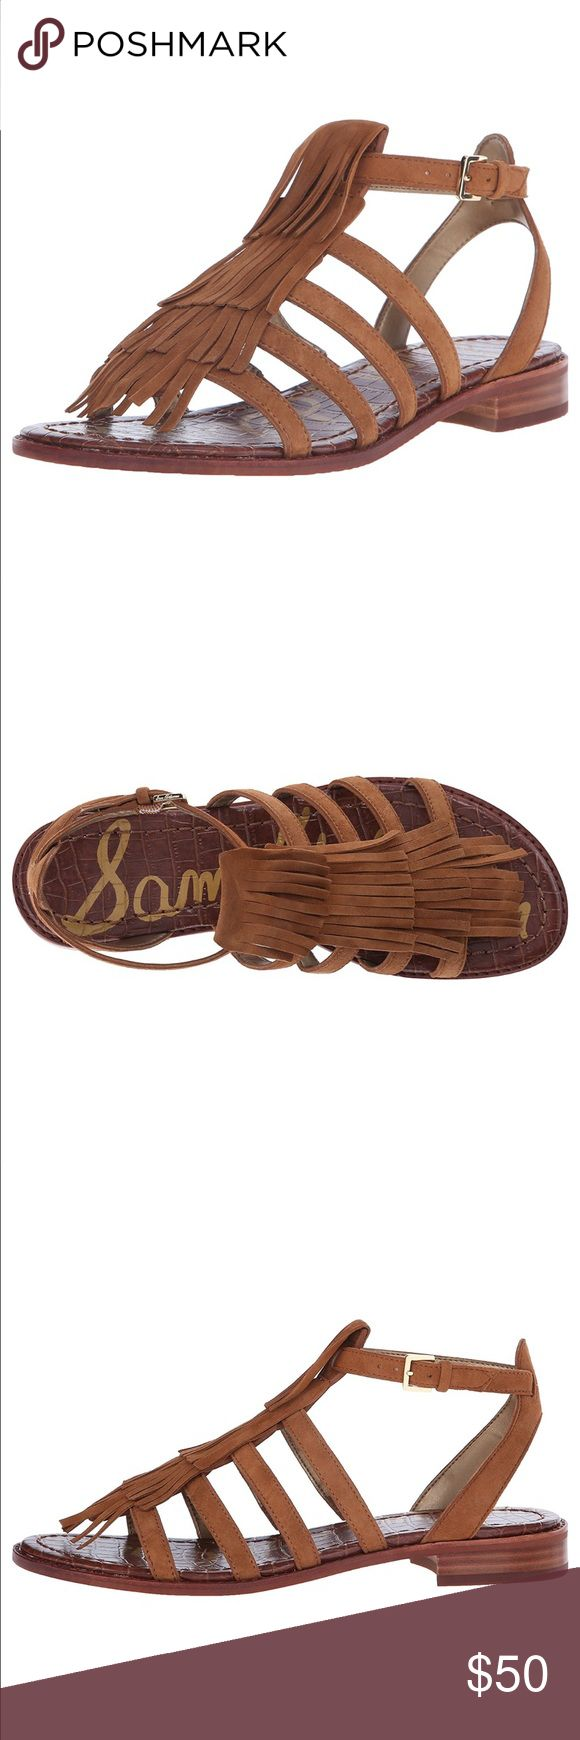 Sam Edelman Fringe Sandals NWT and boxed. Beautiful and fun summer staple. True 7 1/2. Just in this season! Get them before they are gone! Won't find them cheaper anywhere else! Price Firm. Sam Edelman Shoes Sandals